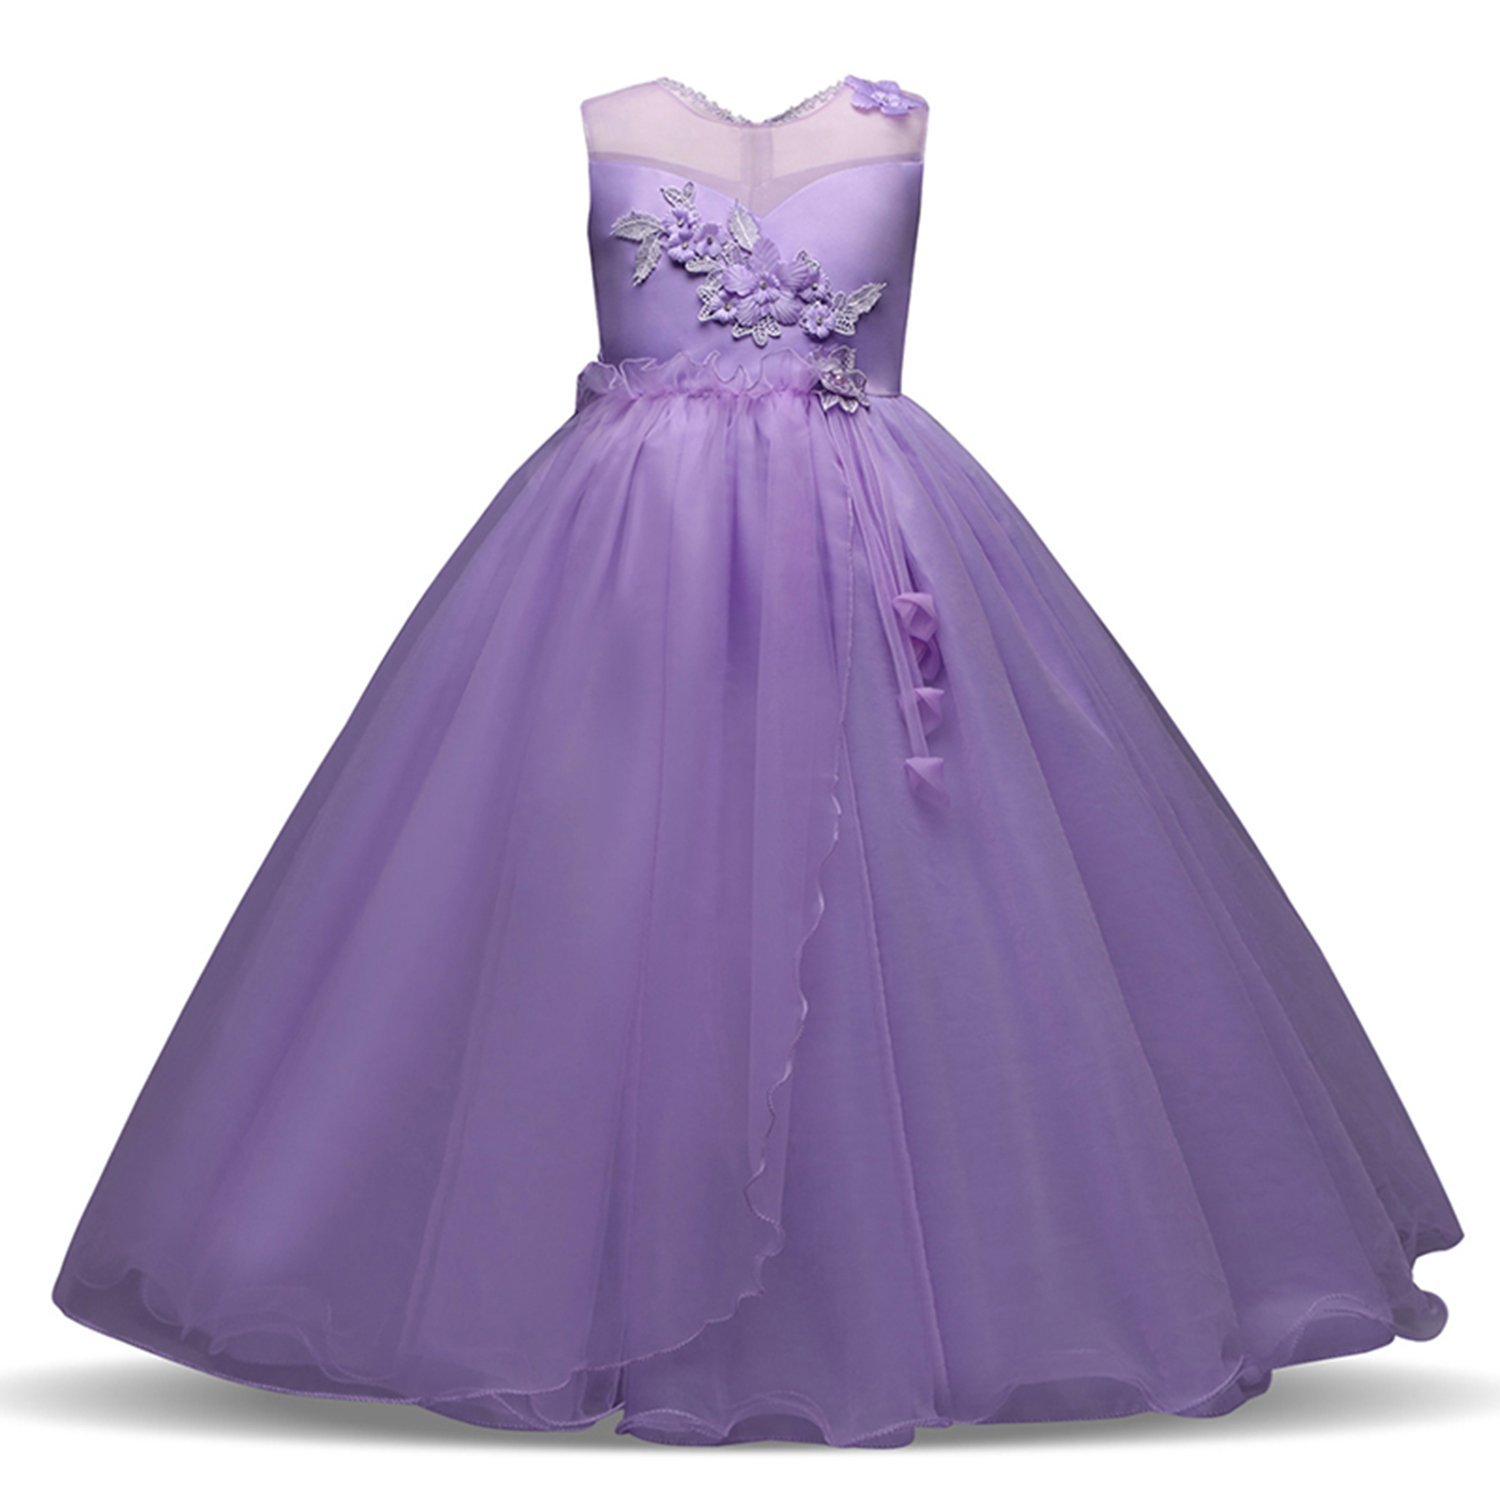 2fadda5a0 Get Quotations · Drawingo Long Gown Children Lace Princess Girl Dress For  Wedding Birthday Party Teenage Girl Kids Evening